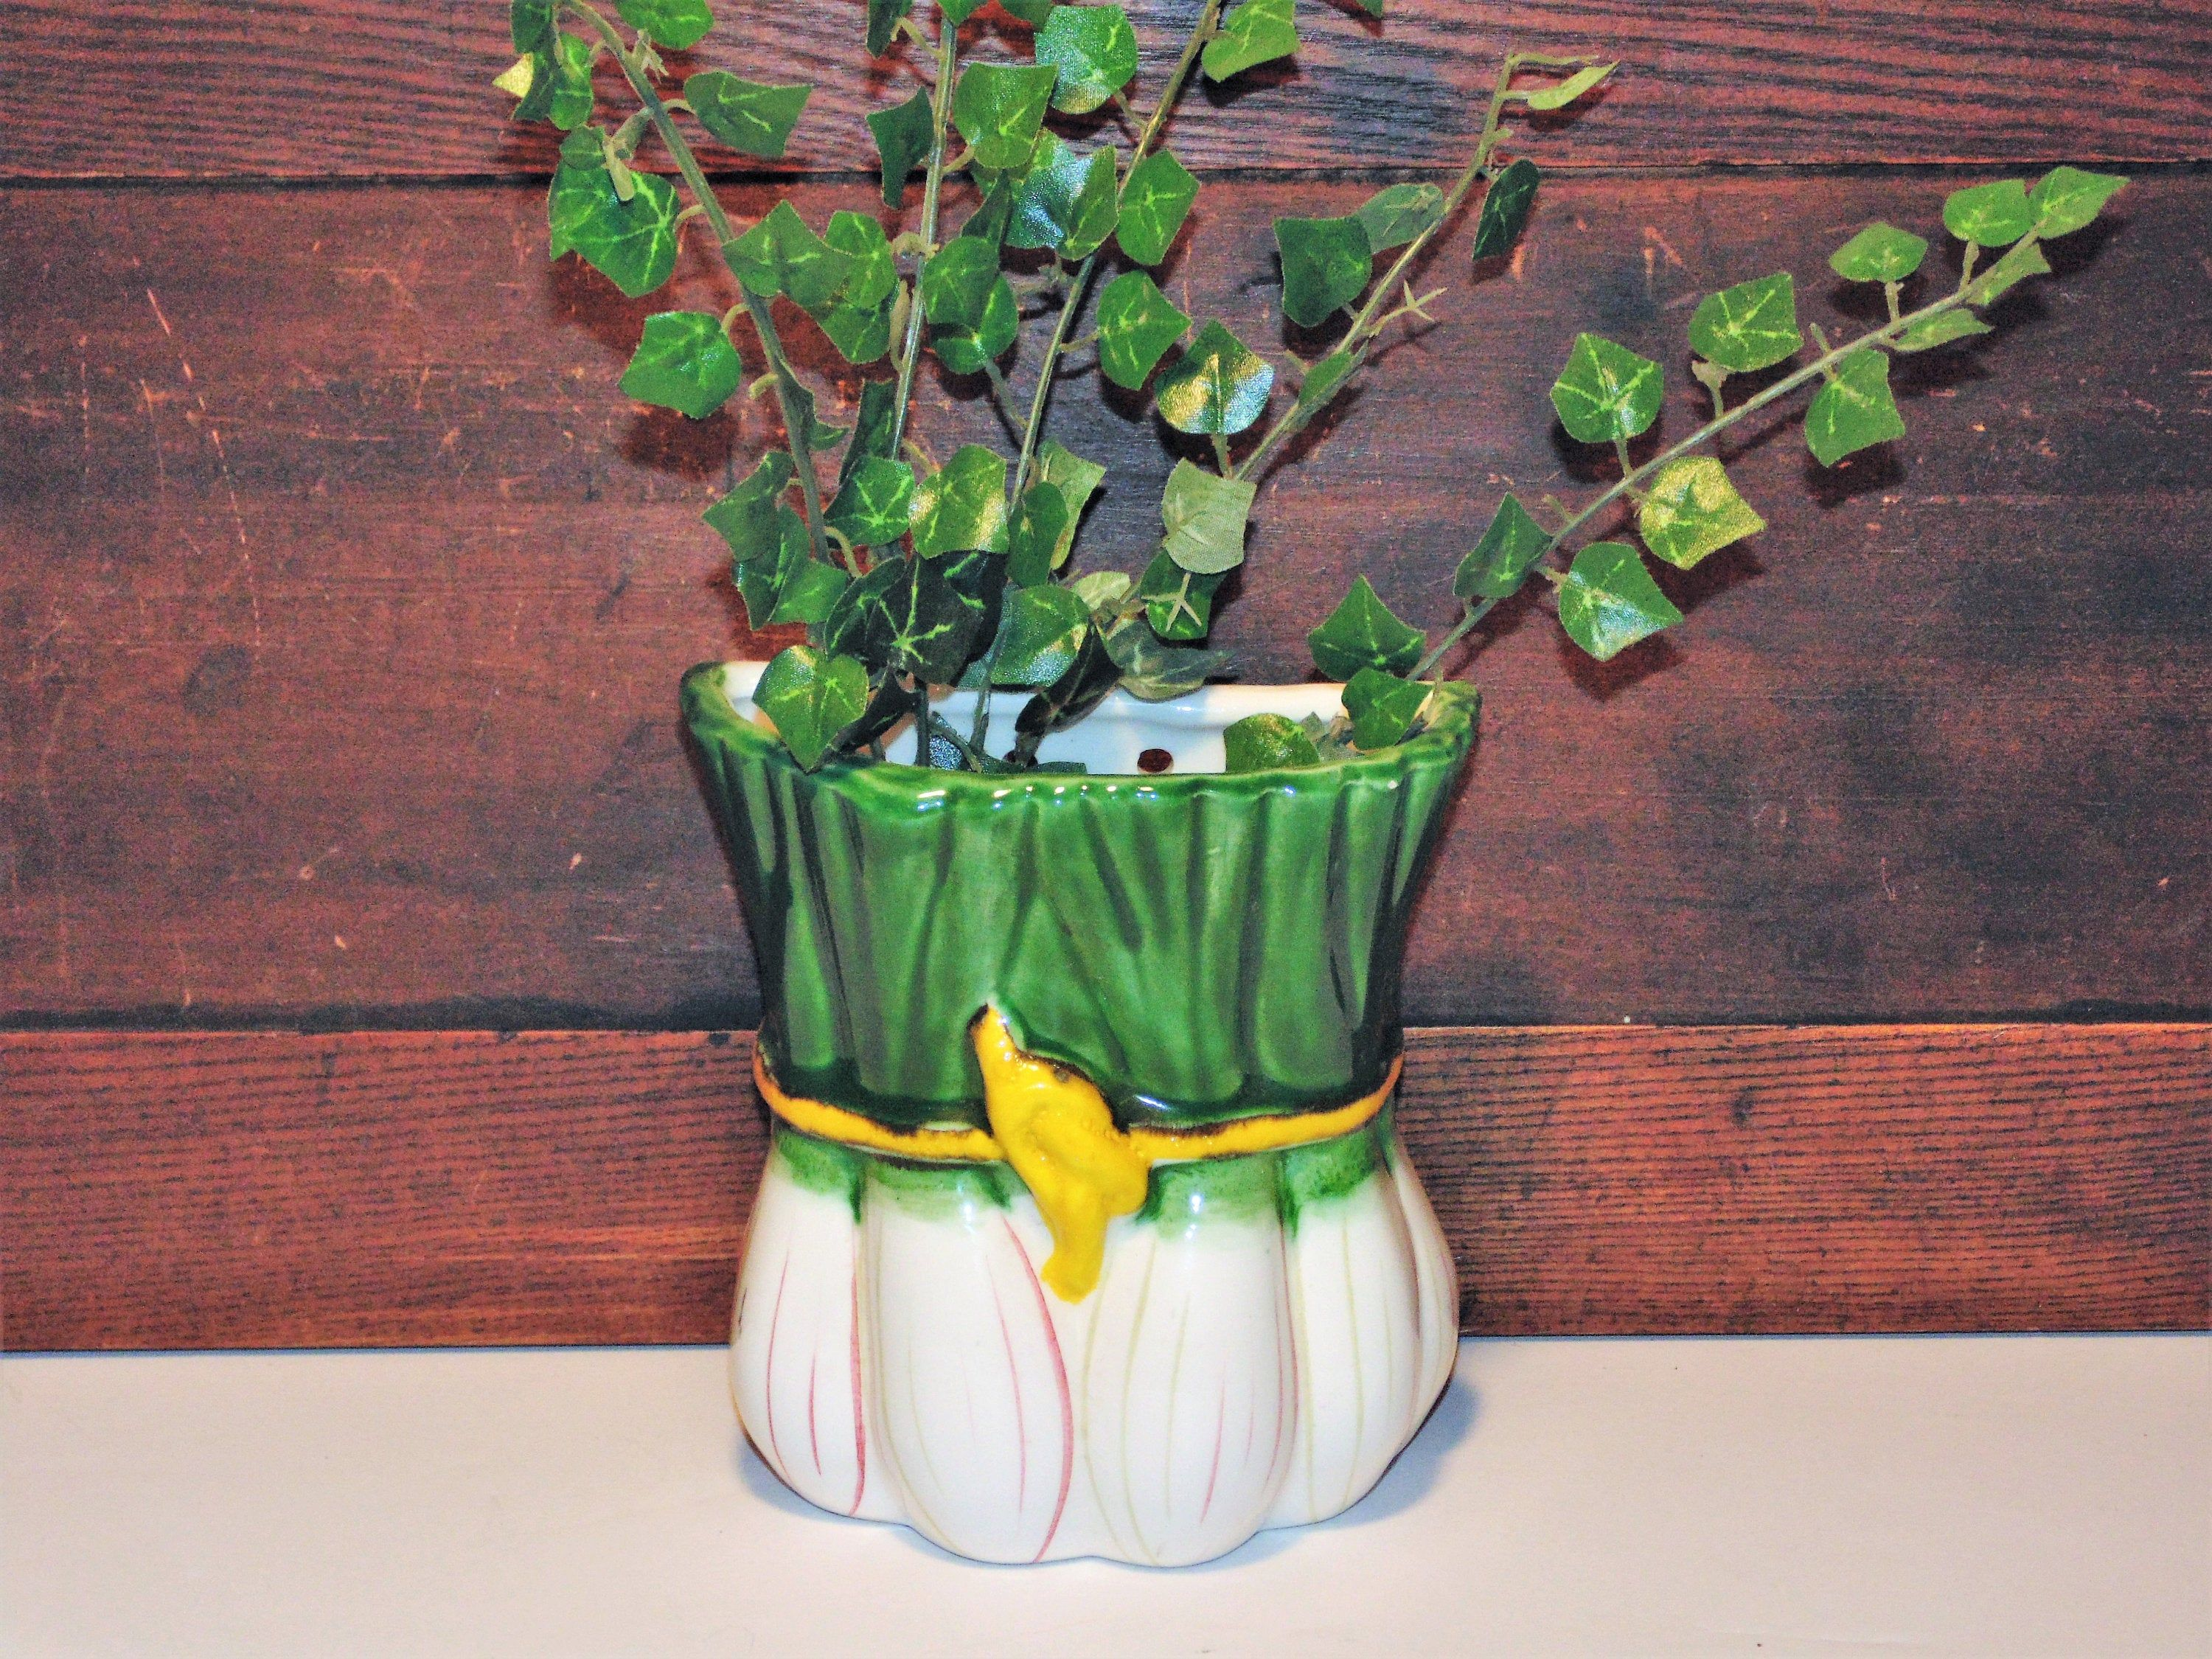 Vintage Wall Pocket Made In Italy Green Onion Scallion Etsy Wall Flower Vases Vintage Walls Flower Vases